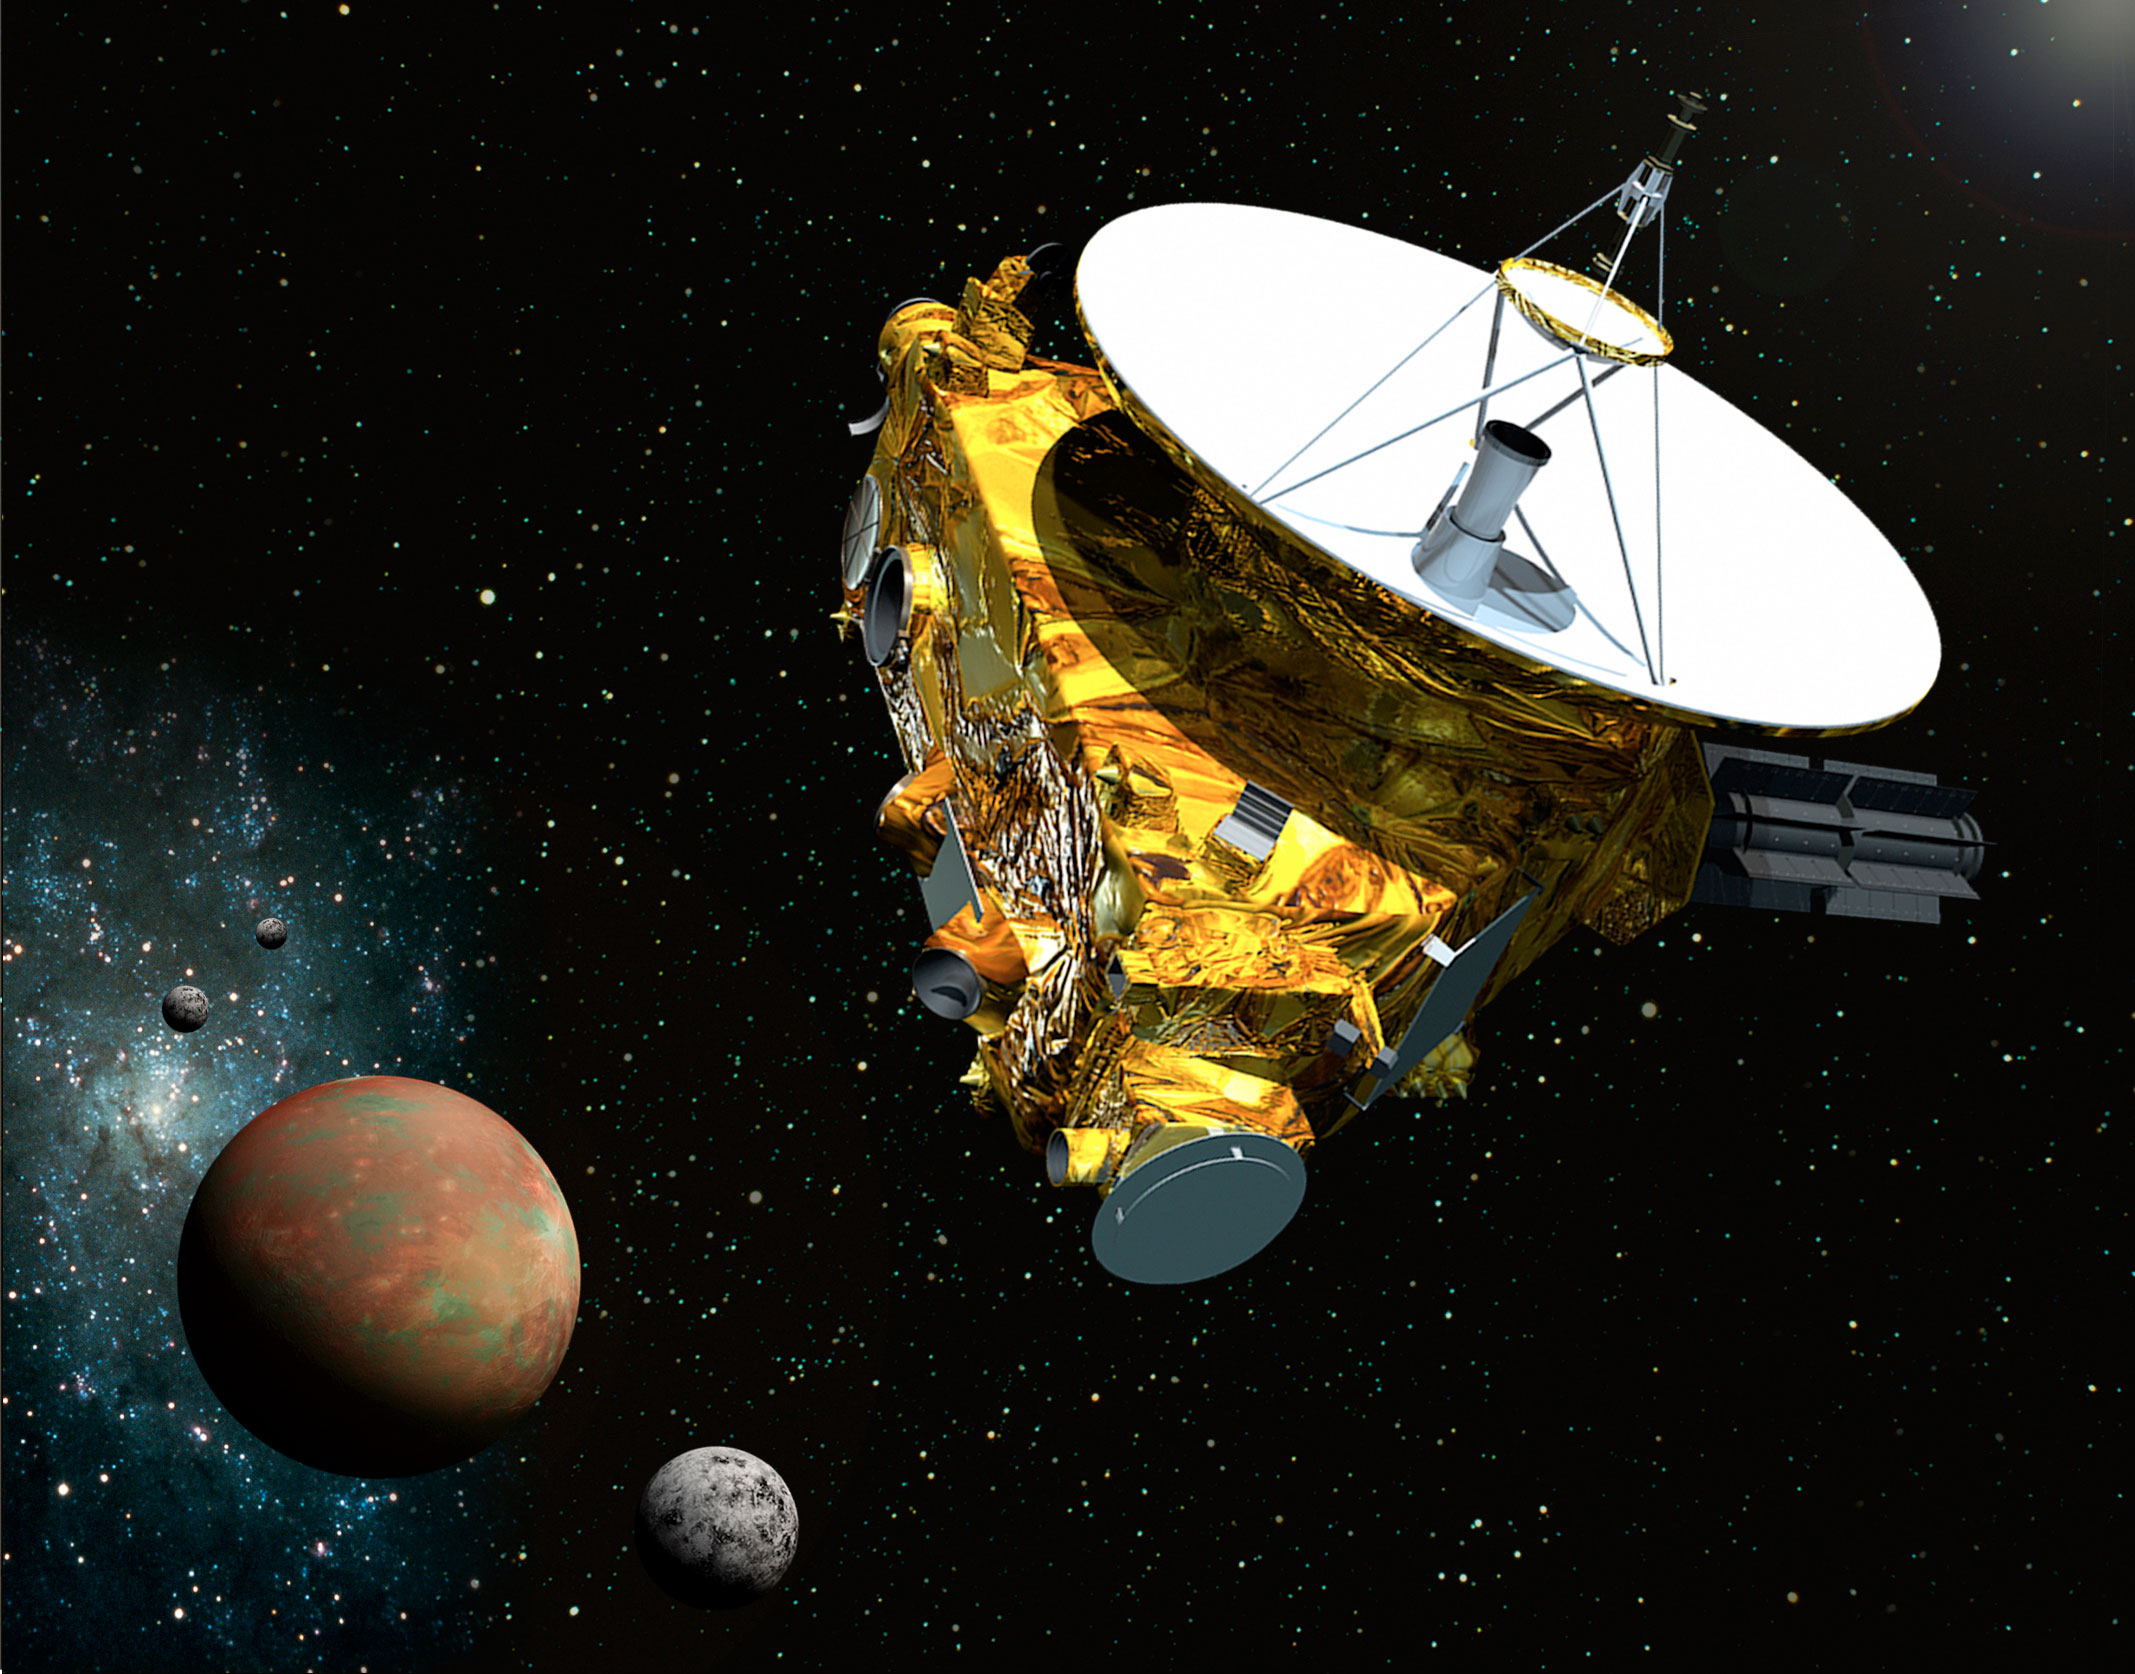 NASA's New Horizons probe is visiting Pluto — and just sent back its first color photos